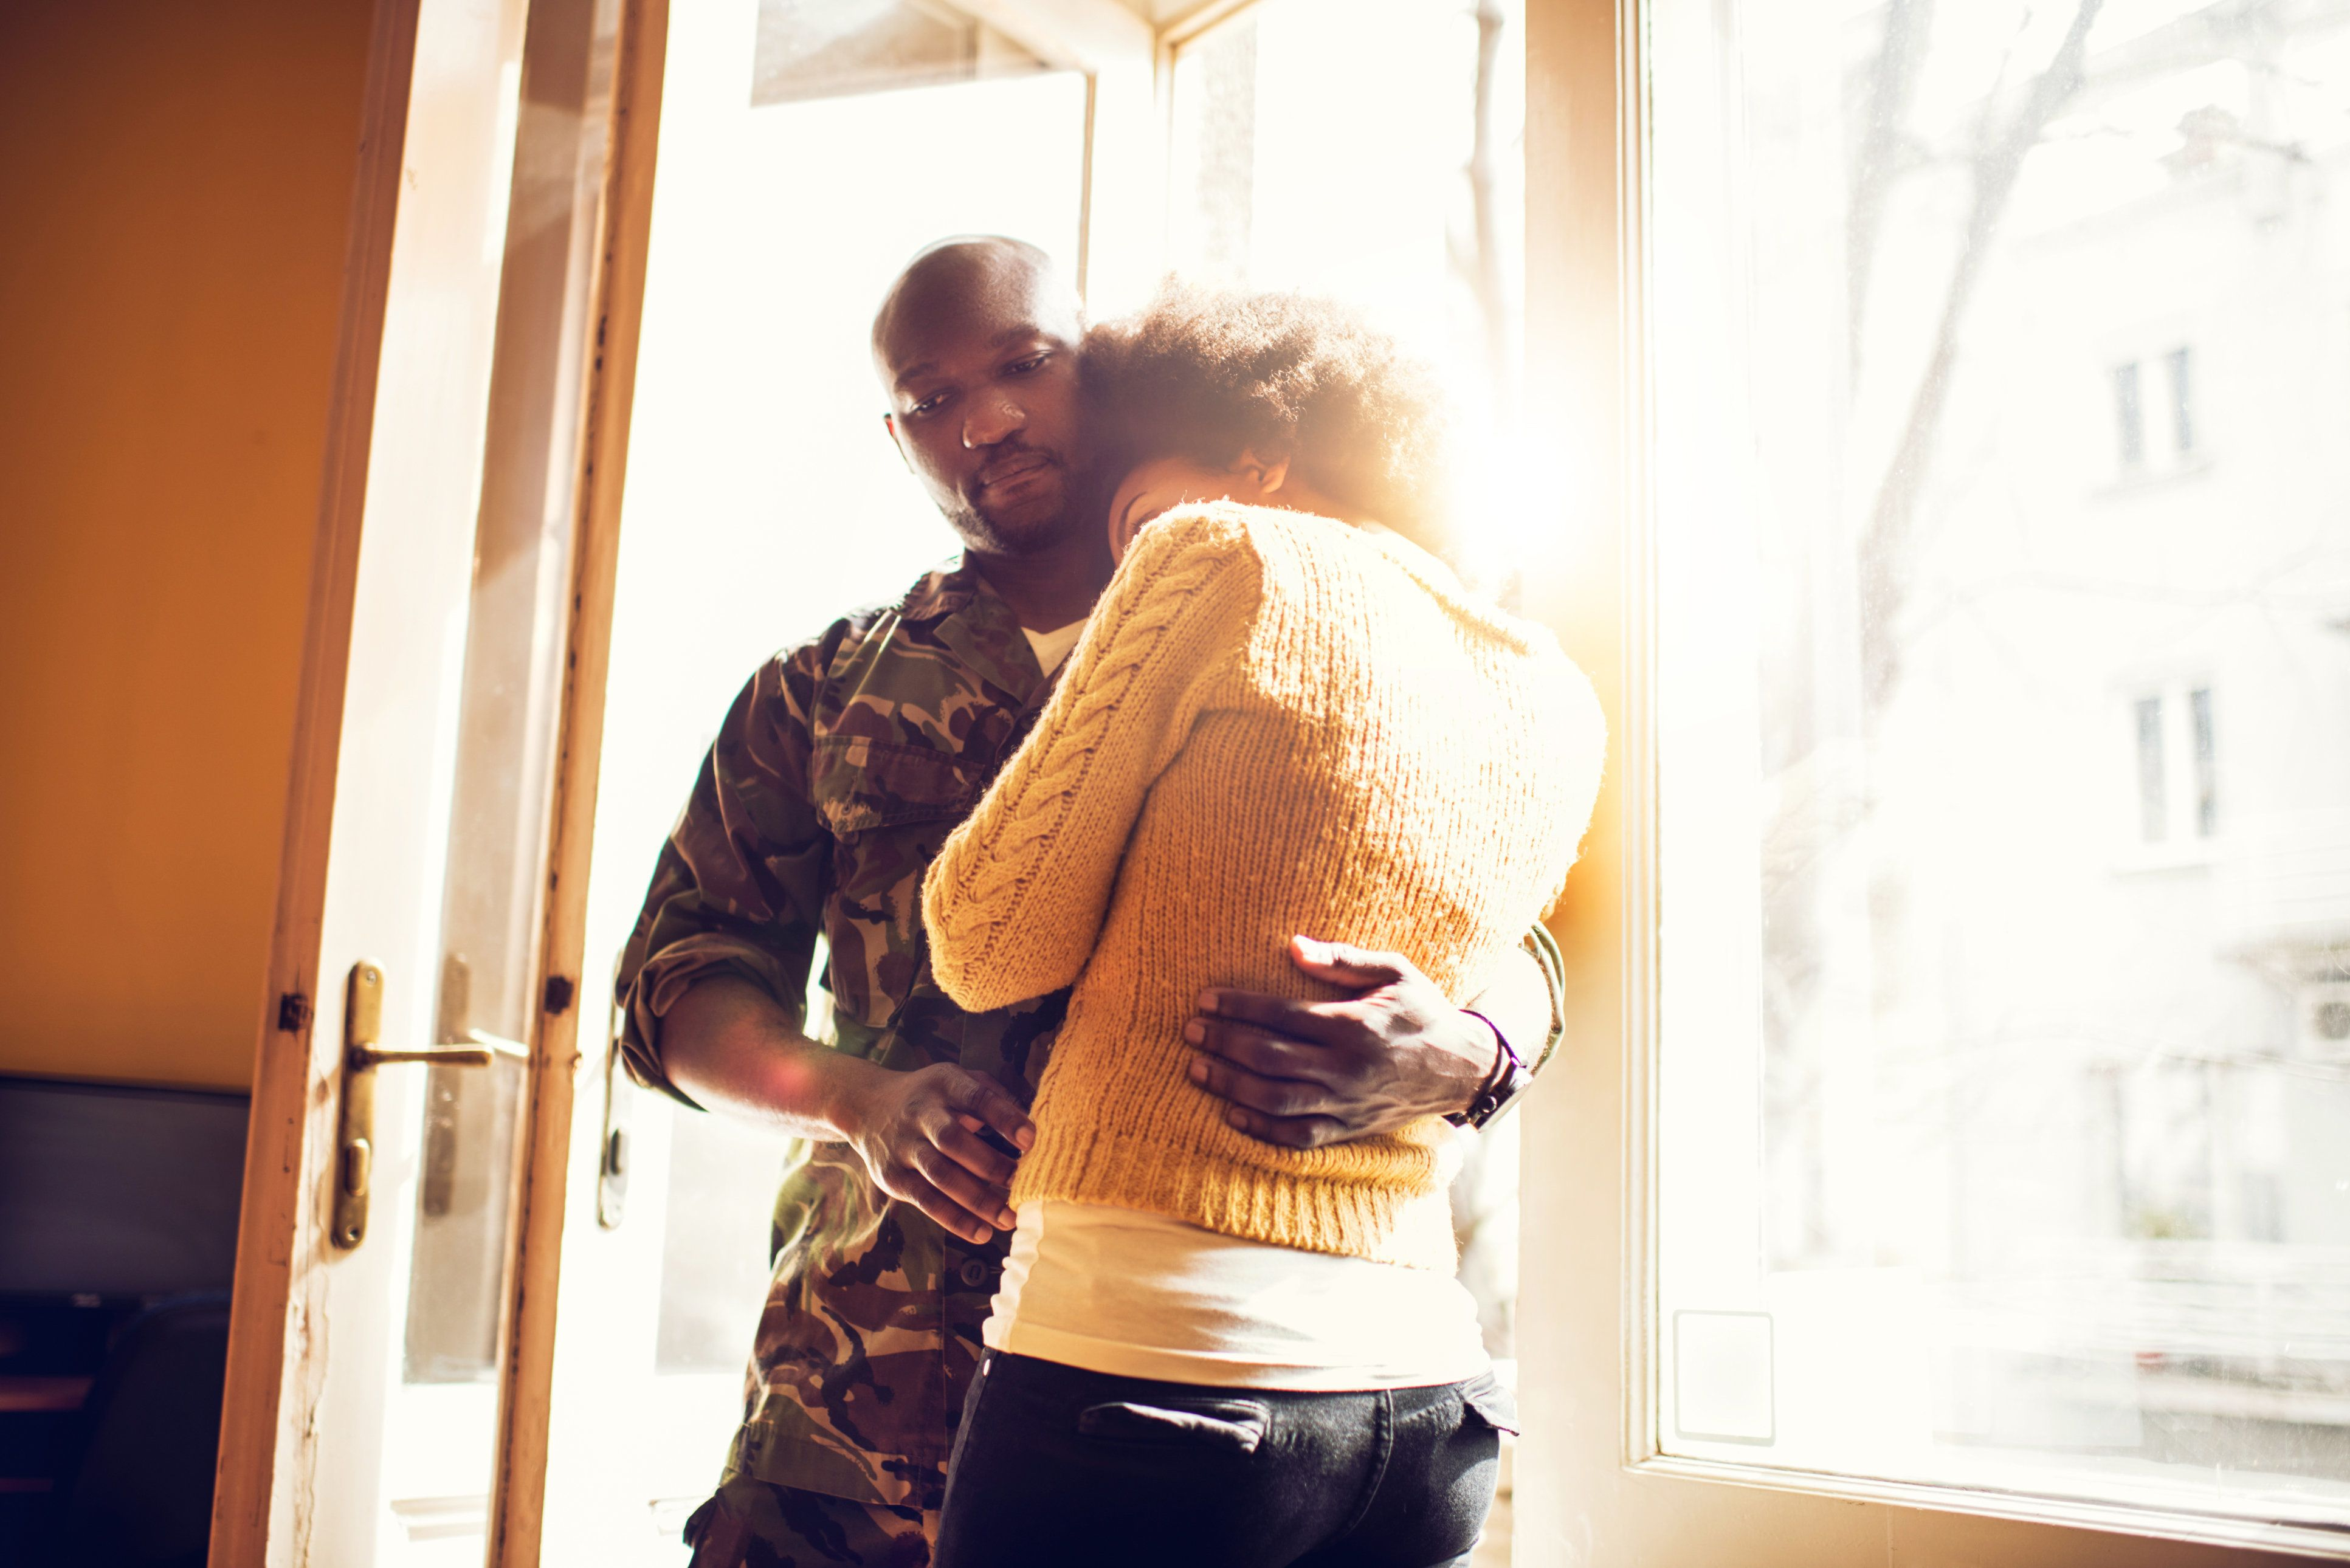 "In your 20s, you're still figuring out what a healthy relationship looks like, said <a href=""http://www.huffingtonpost.com/rachel-g-scott/"" data-beacon=""{""p"":{""mnid"":""entry_text"",""lnid"":""citation"",""mpid"":0}}"">teacher and writer Rachel Scott</a>."